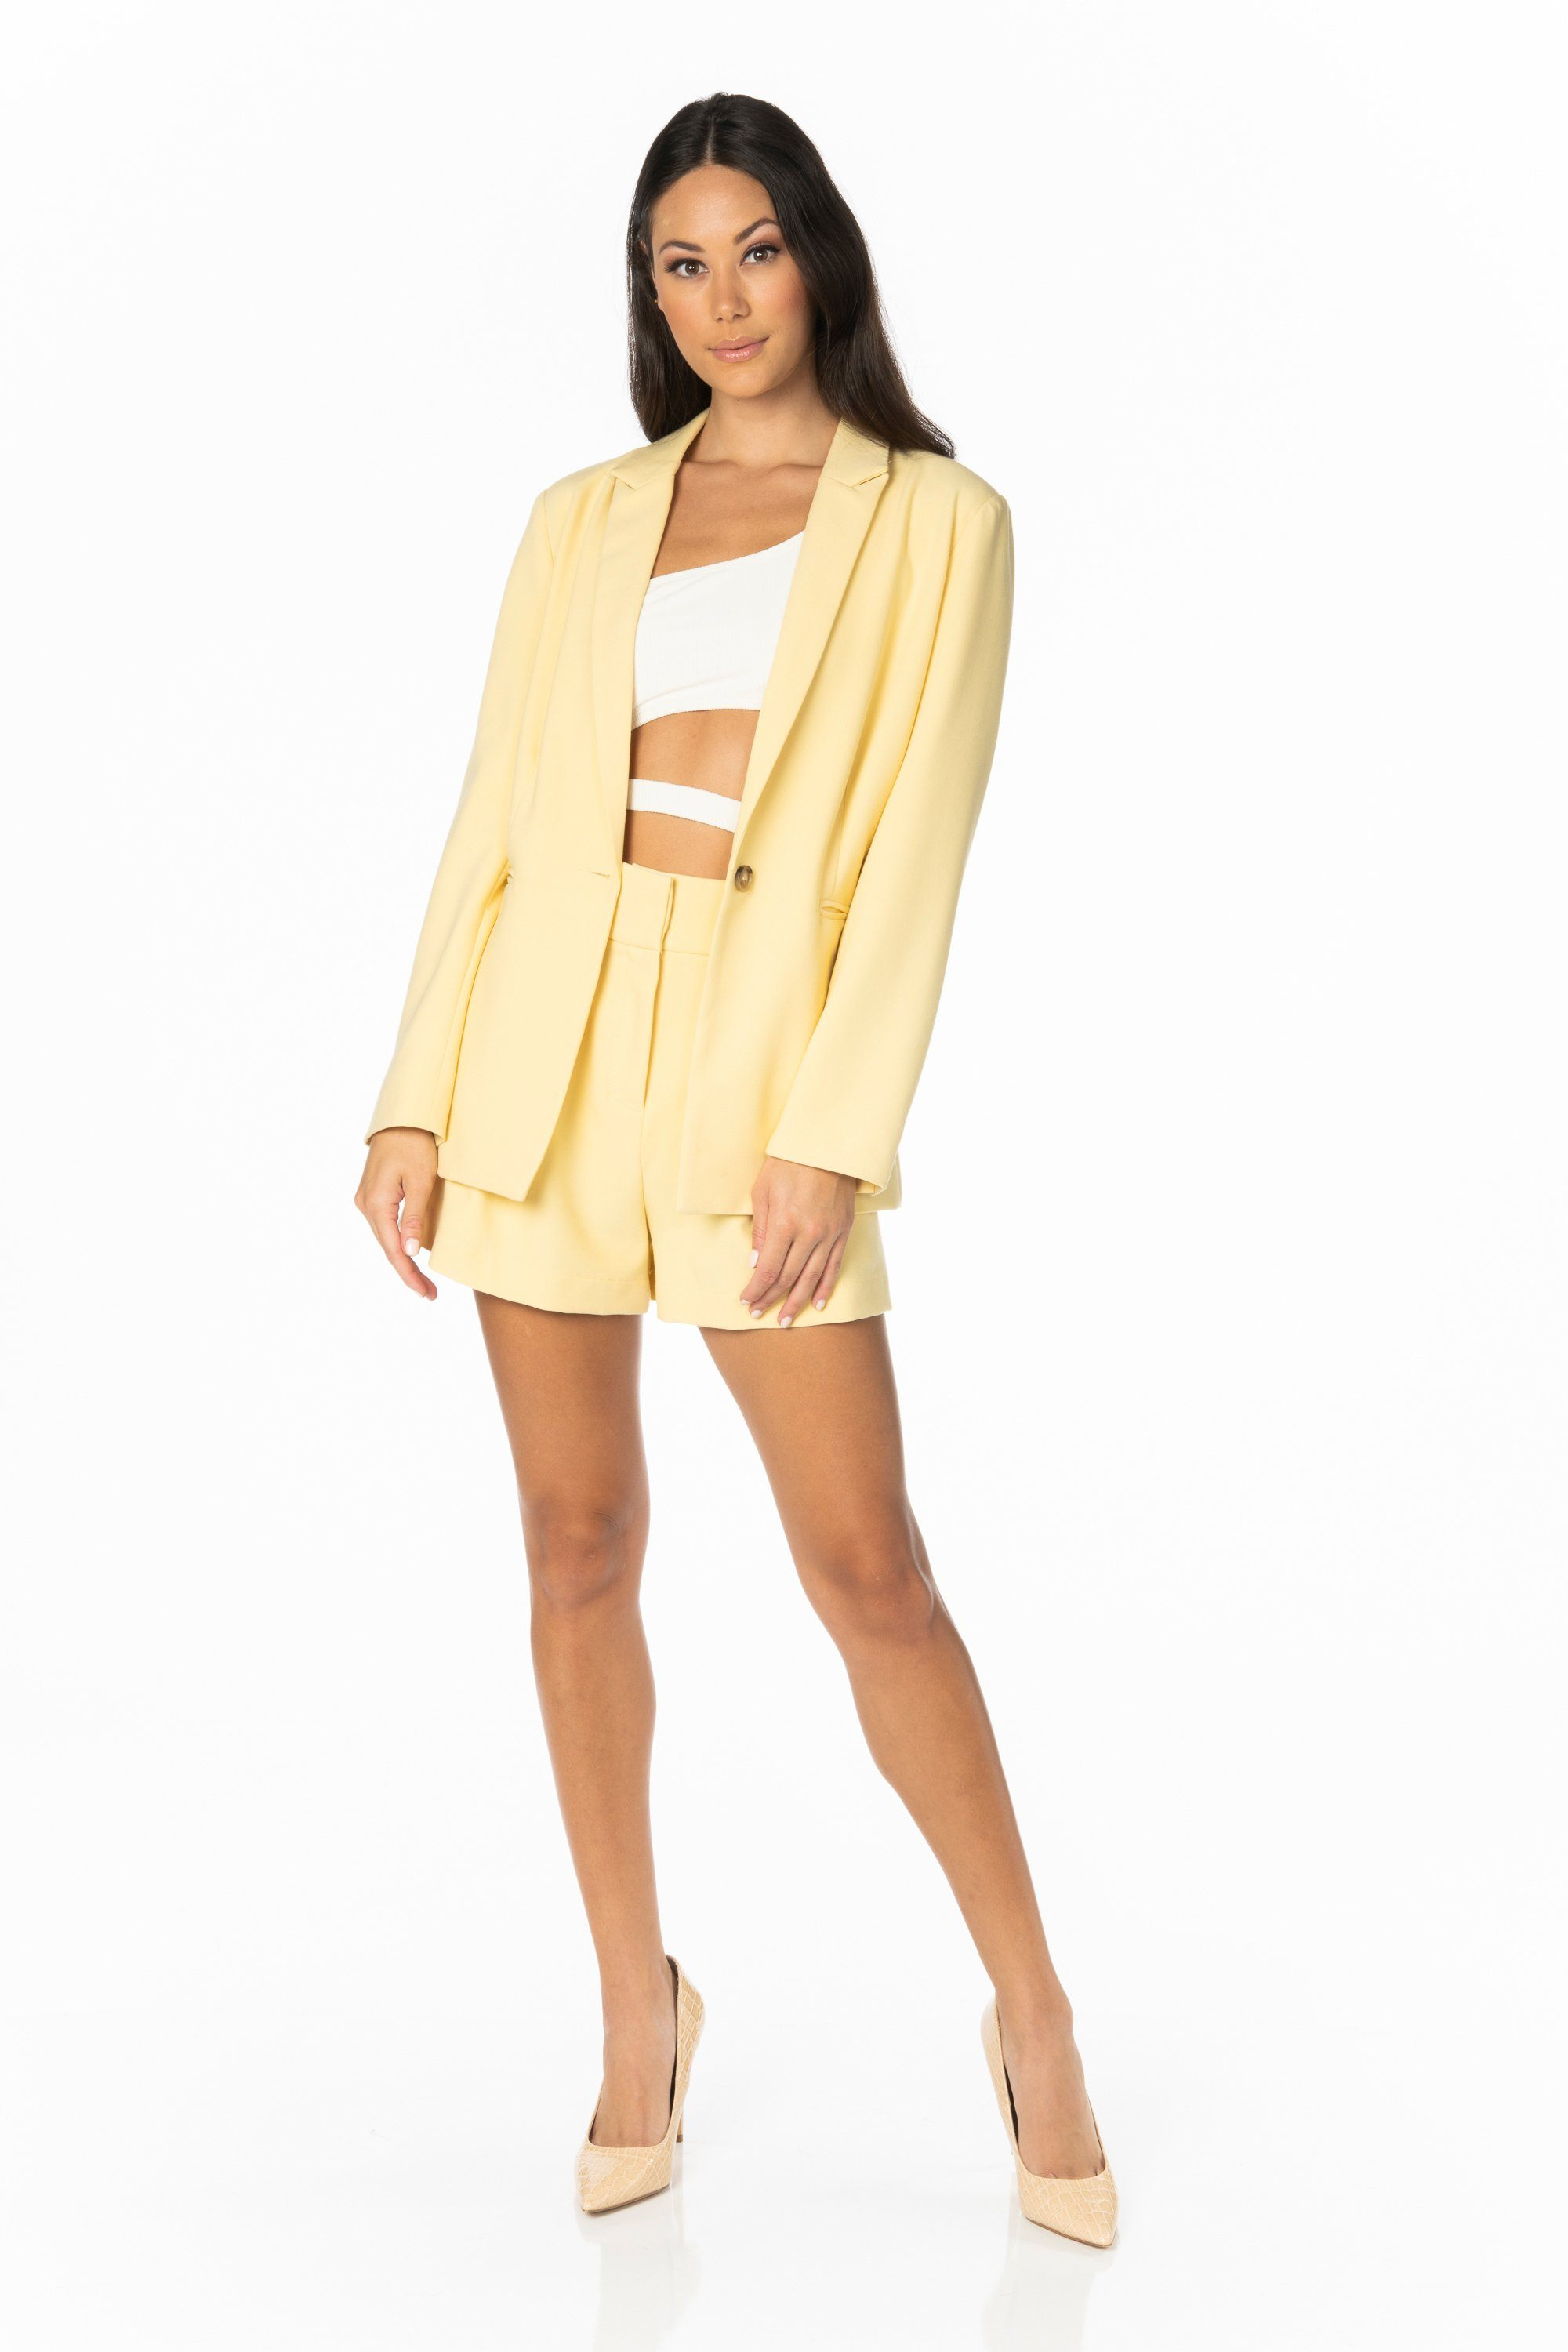 Lemon Zest Yellow Blazer Sets HYPEACH BOUTIQUE